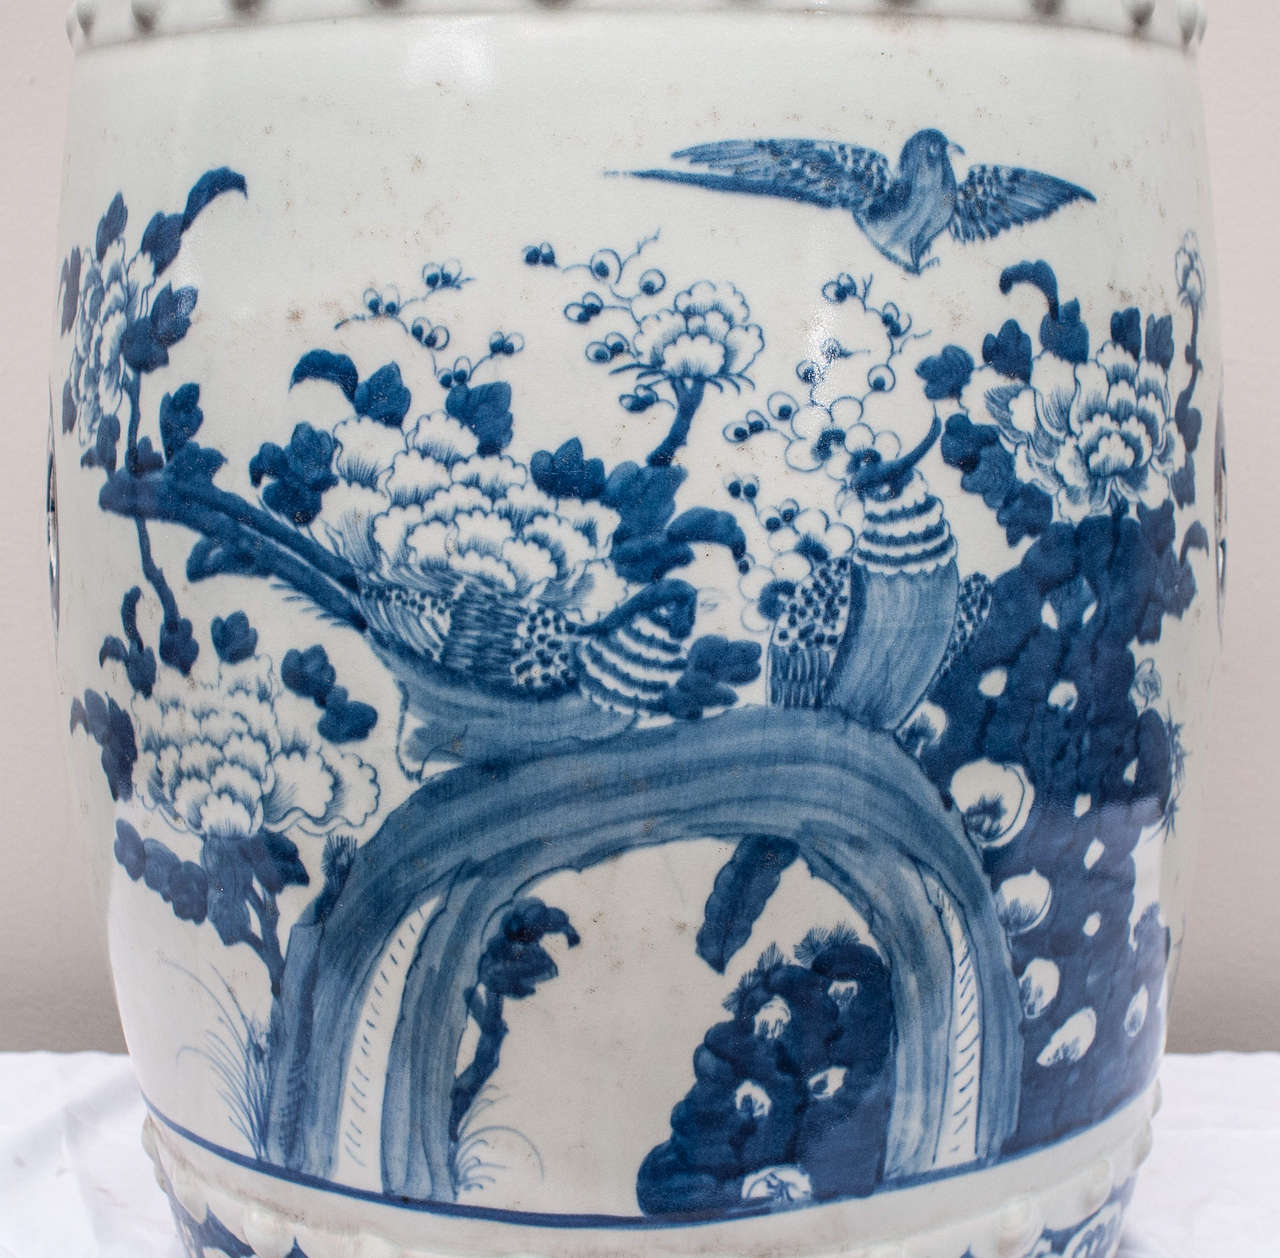 Red House Design Studio Jingdezhen Chinese Blue And White Porcelain Garden Seat Image 3